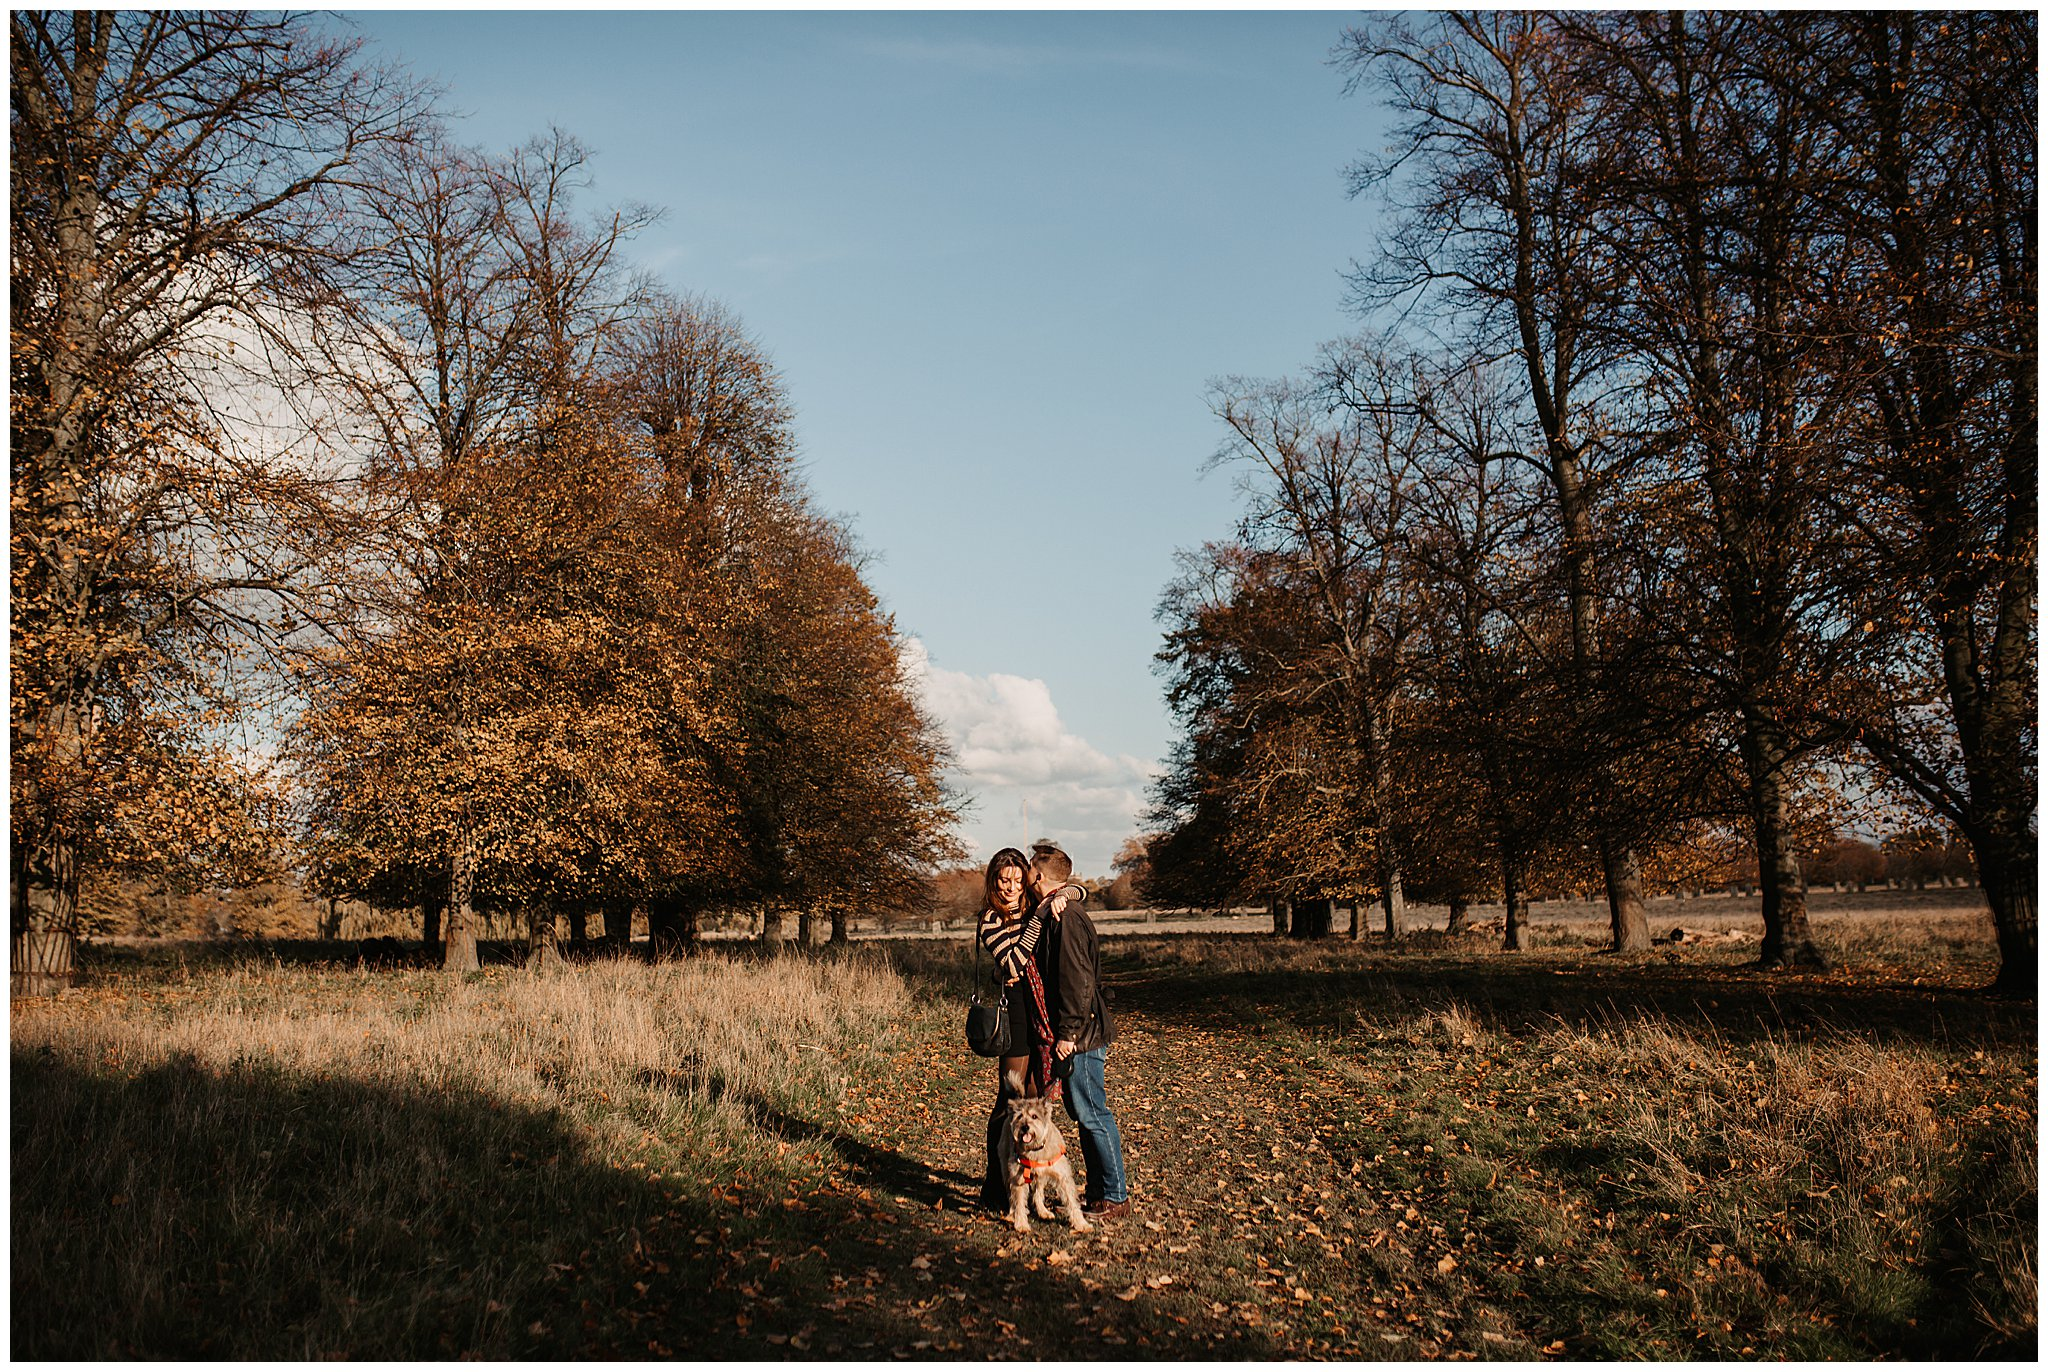 Charlie & Laurence Autumn Bushy Park Couple Shoot-29.jpg